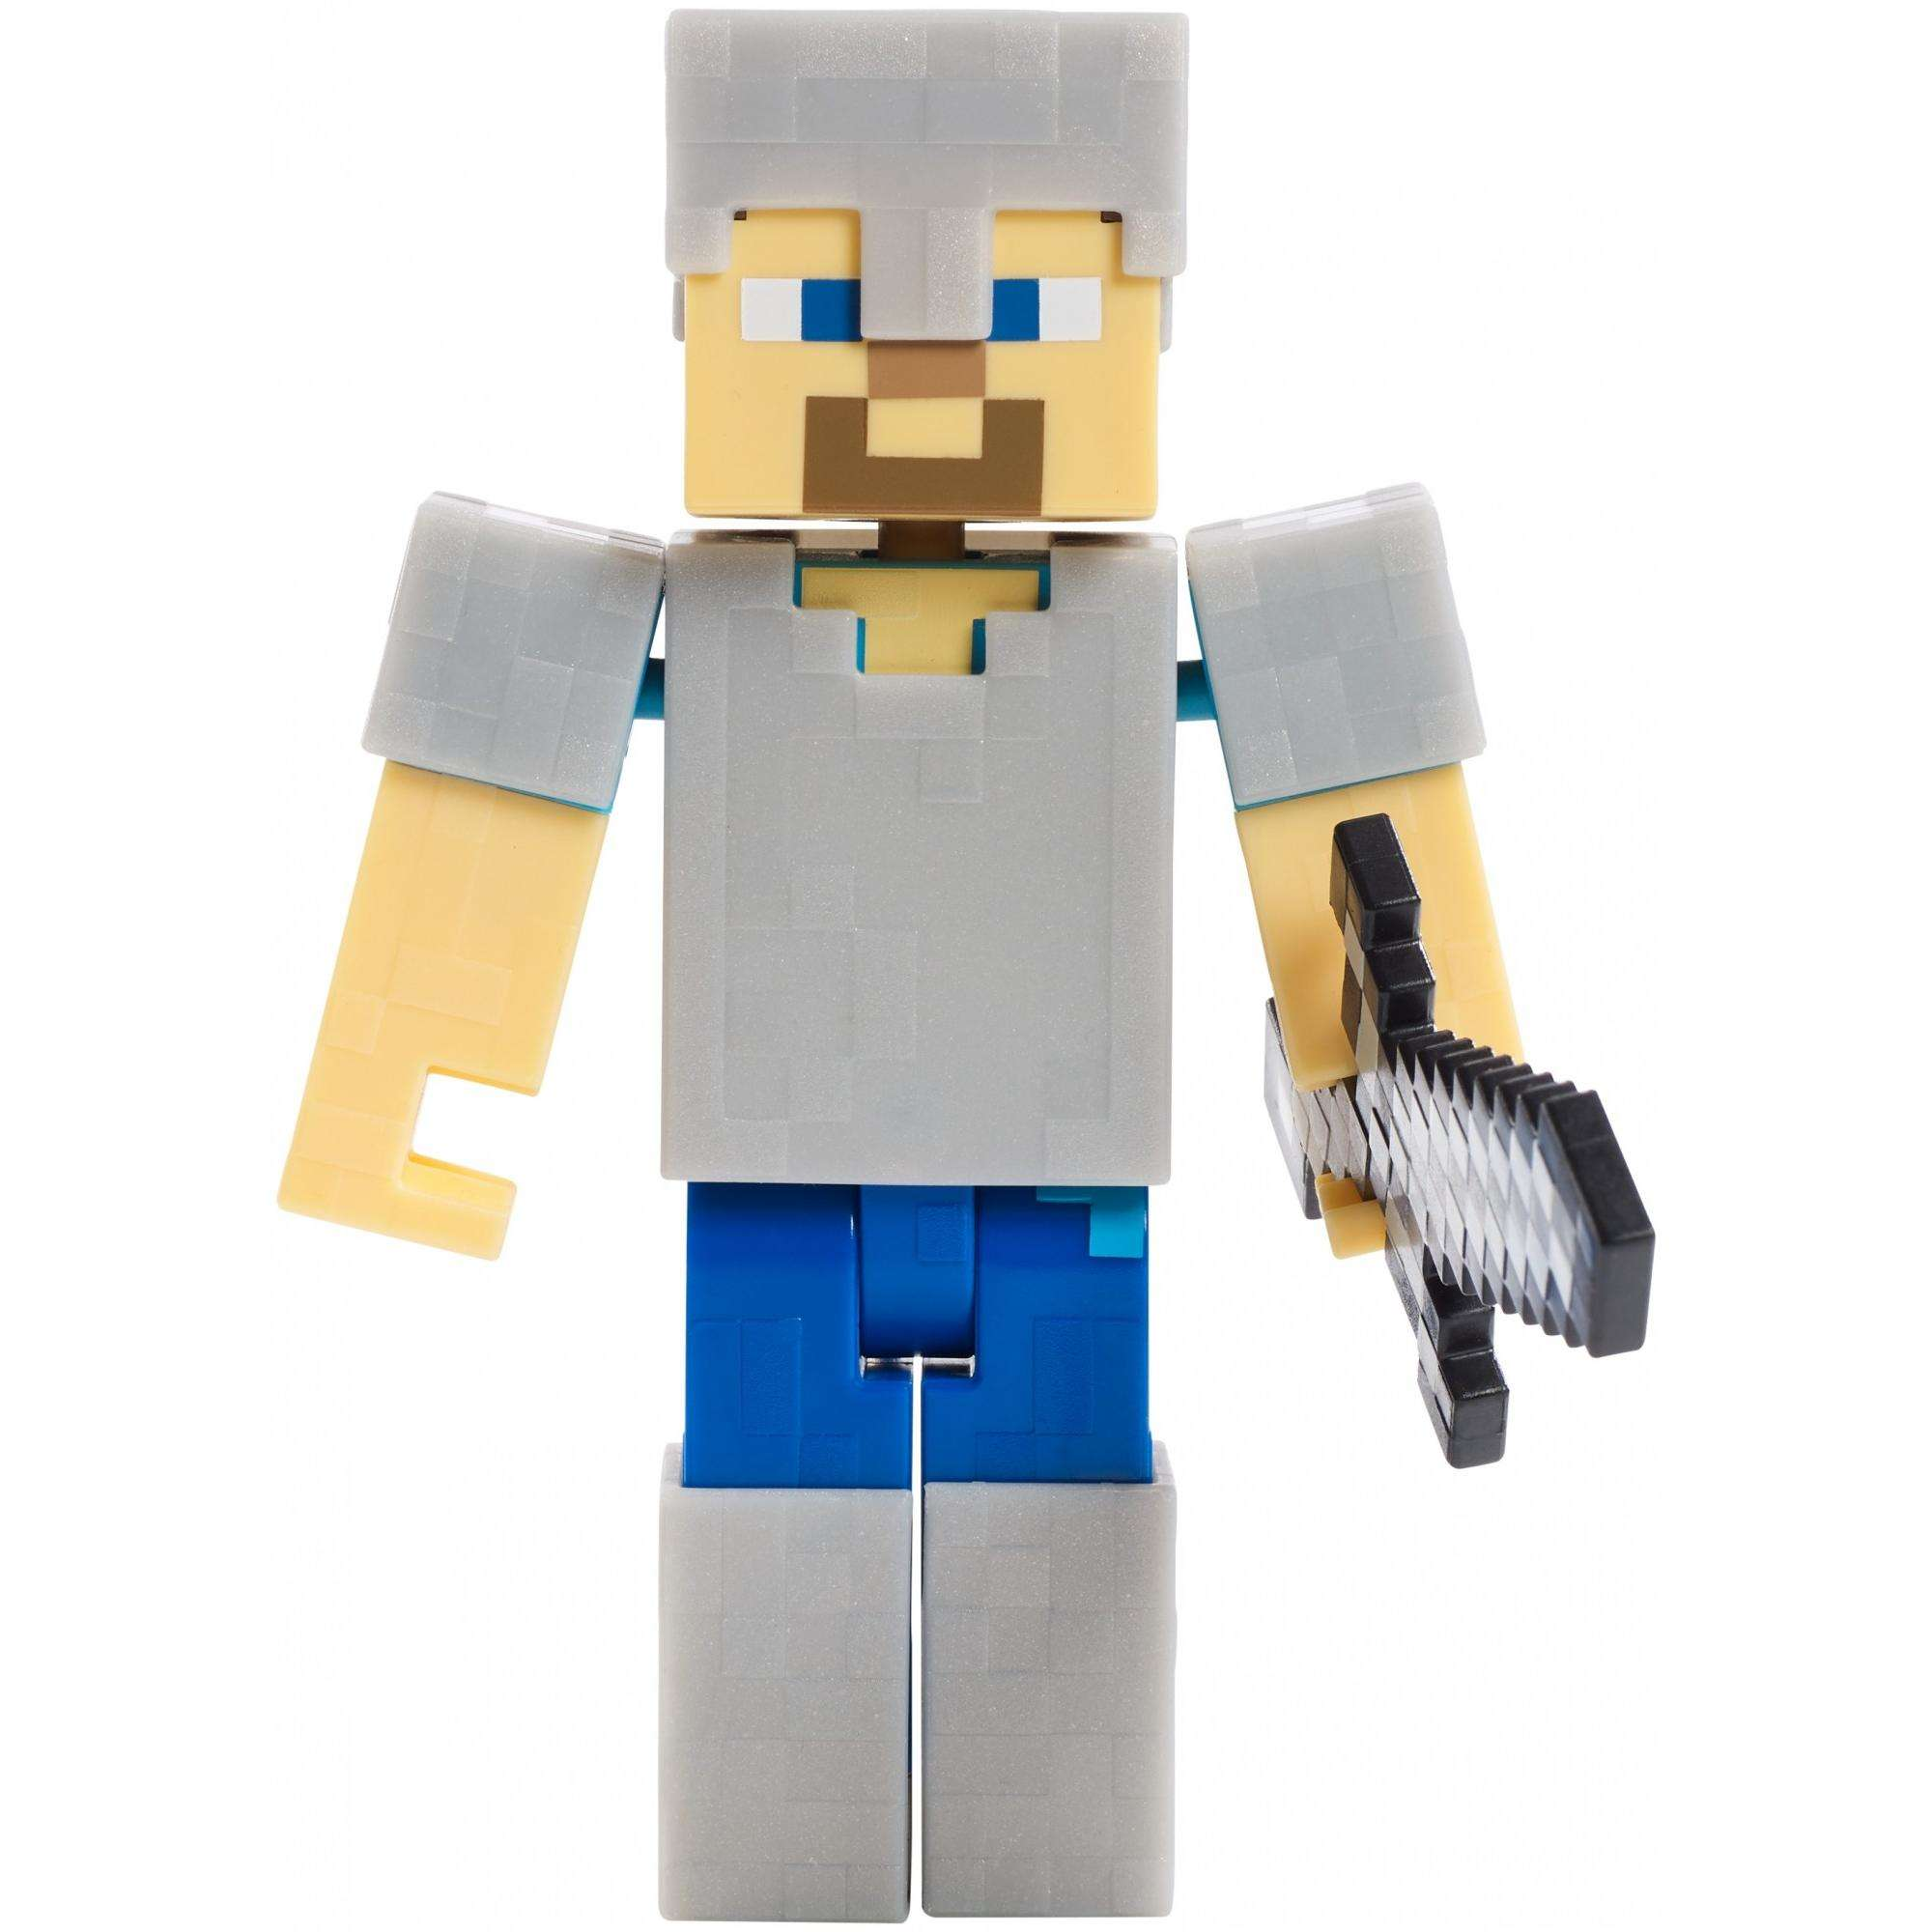 Minecraft Survival Mode Steve with Iron Armor Figure by Mattel